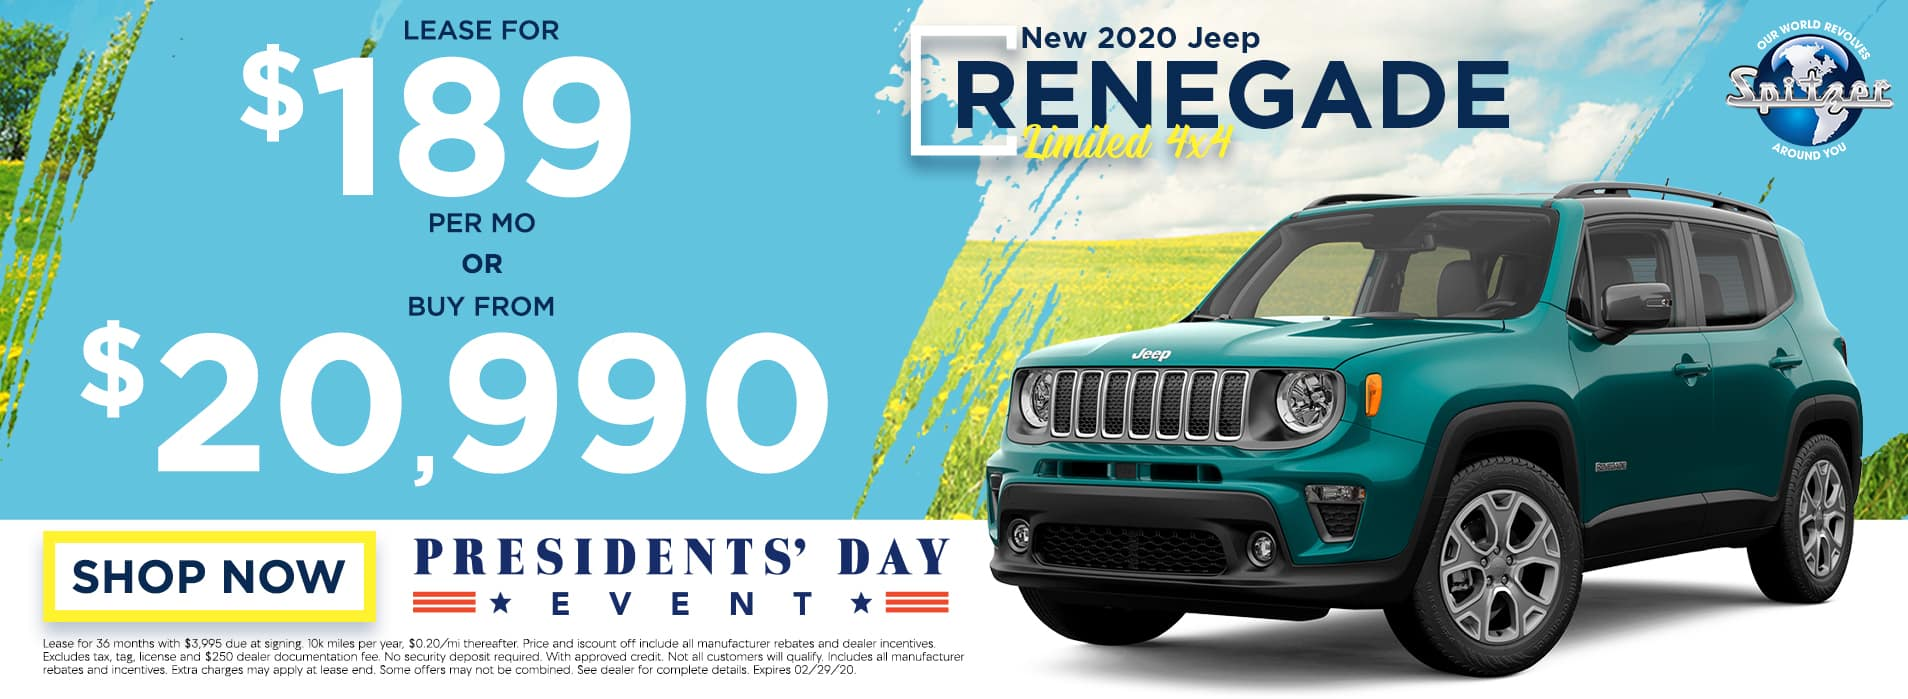 Renegade | Lease for $189